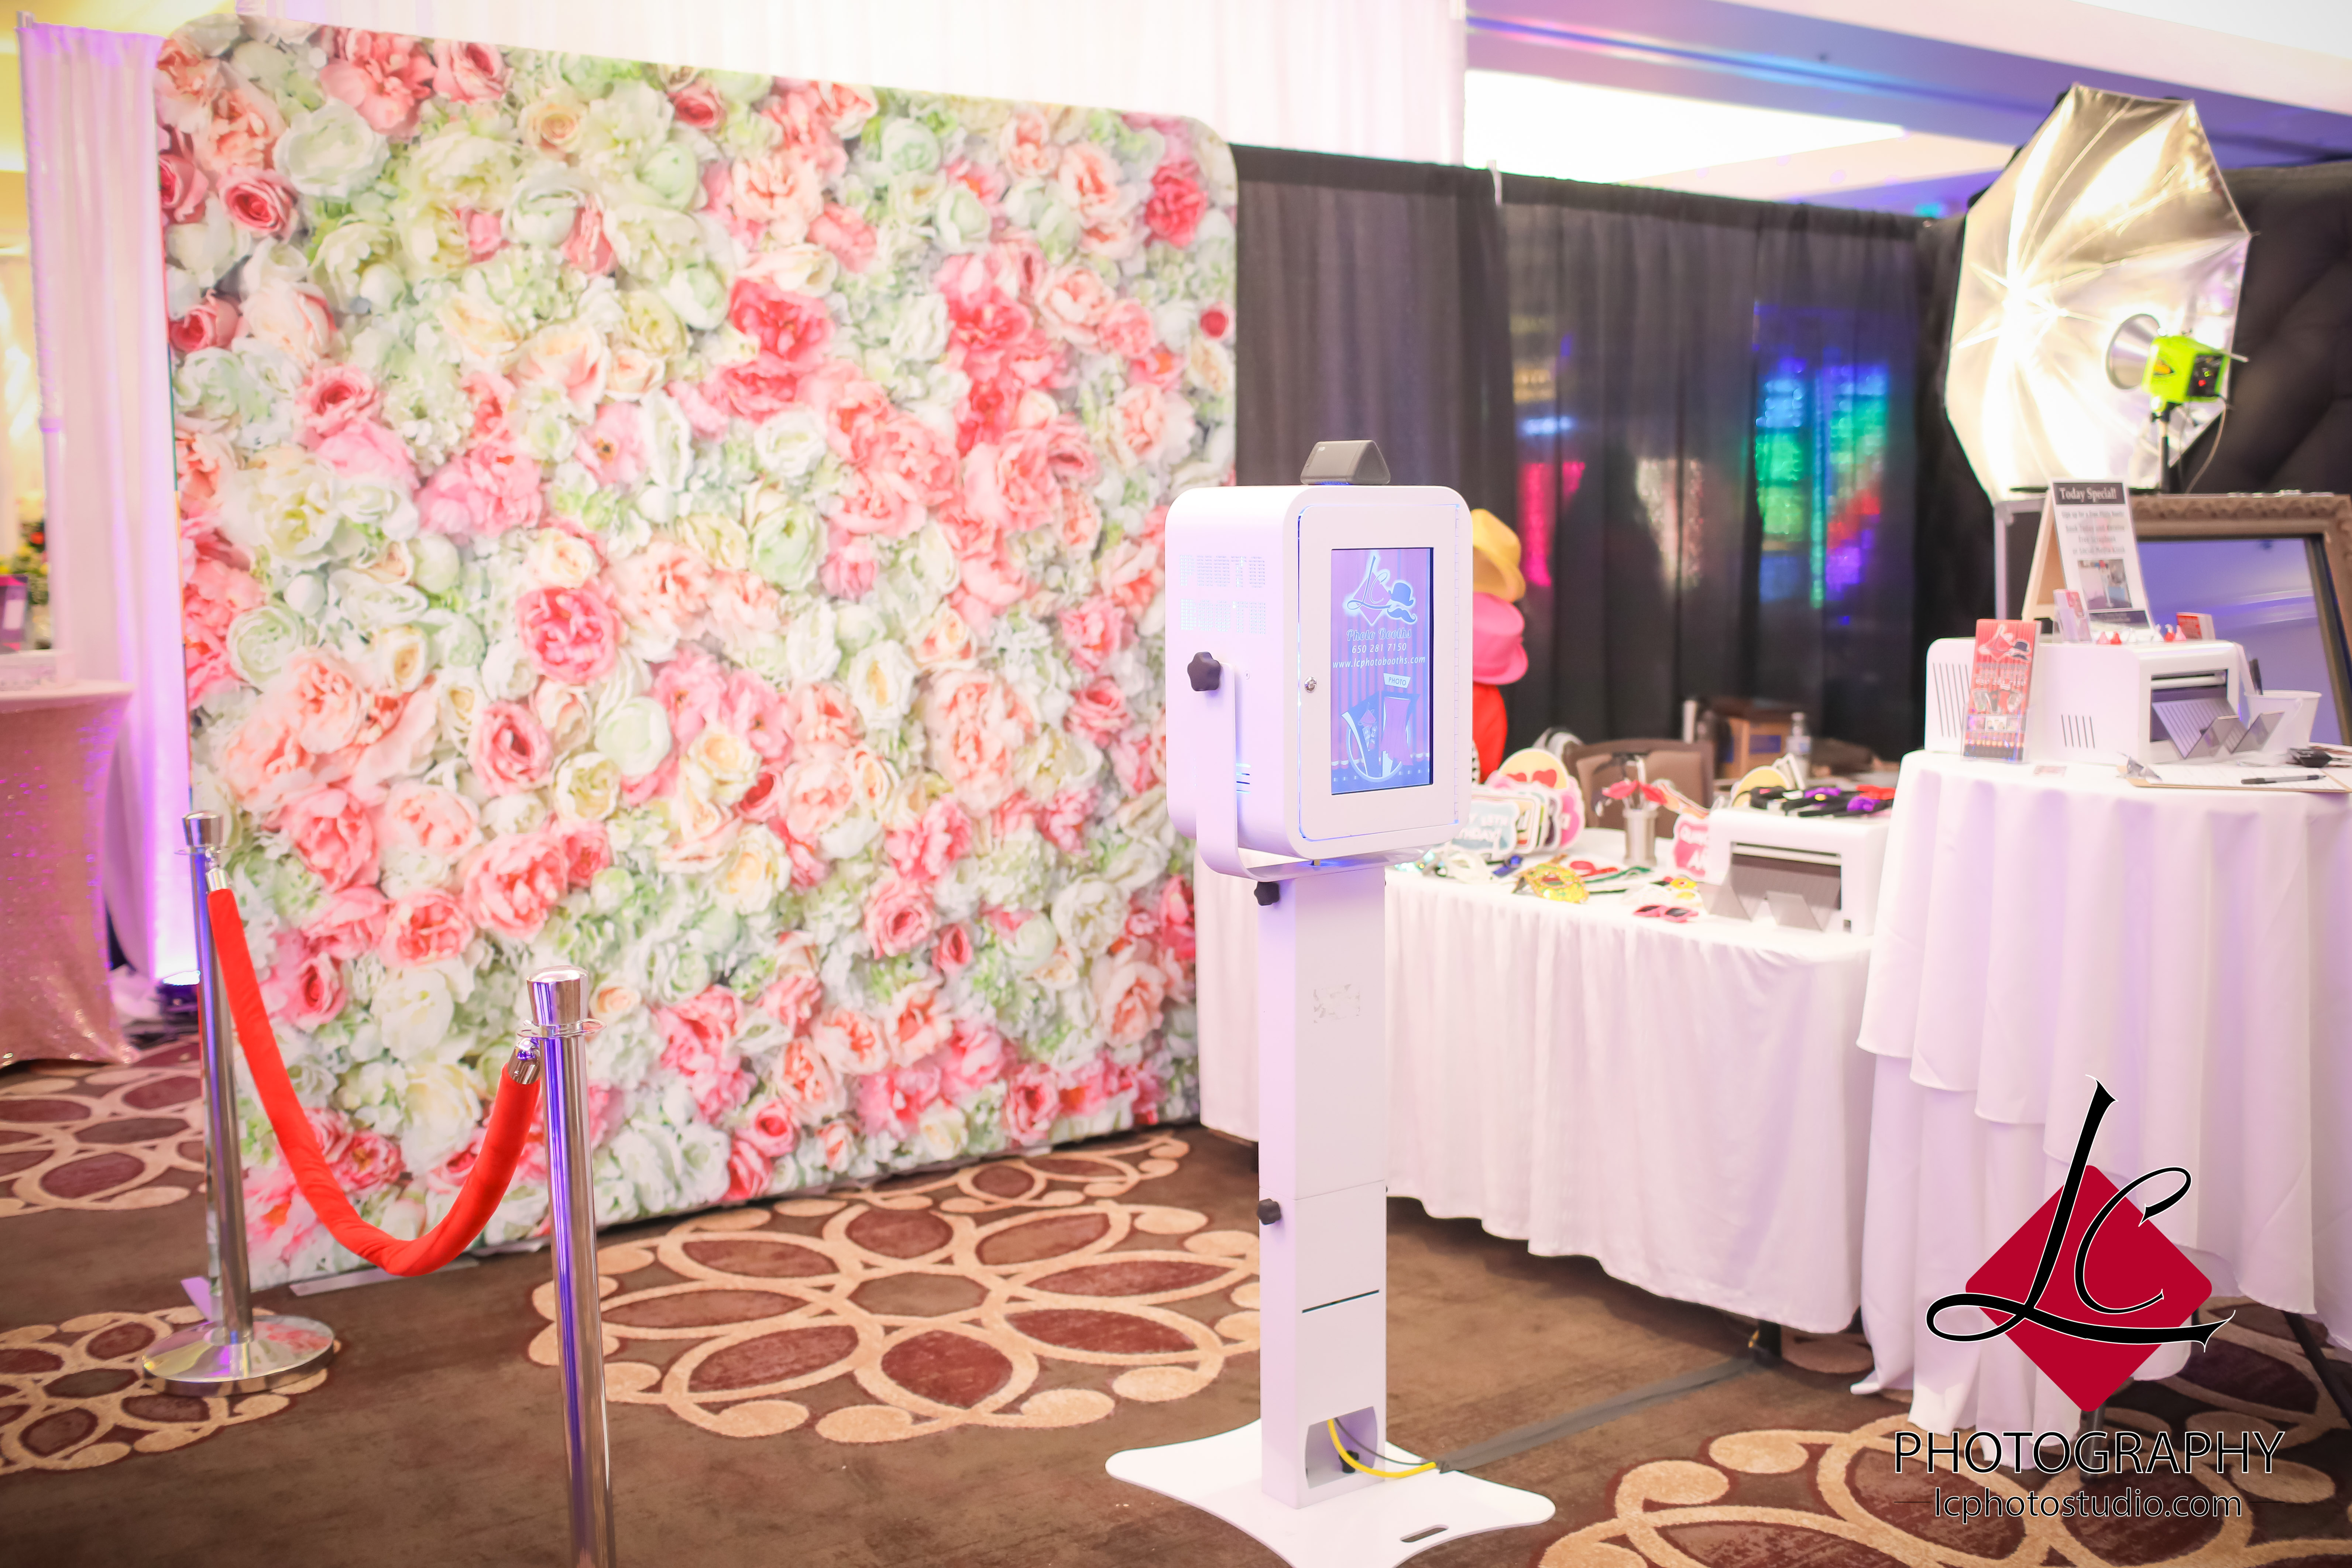 Our Photo Booths - LC Photo Booth